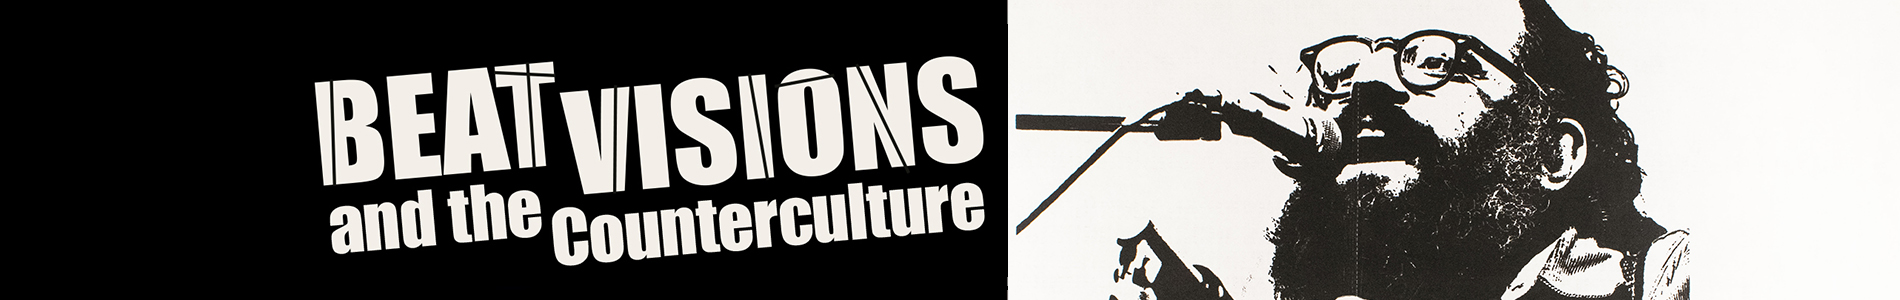 Banner Image for Beat Visions and the Counterculture